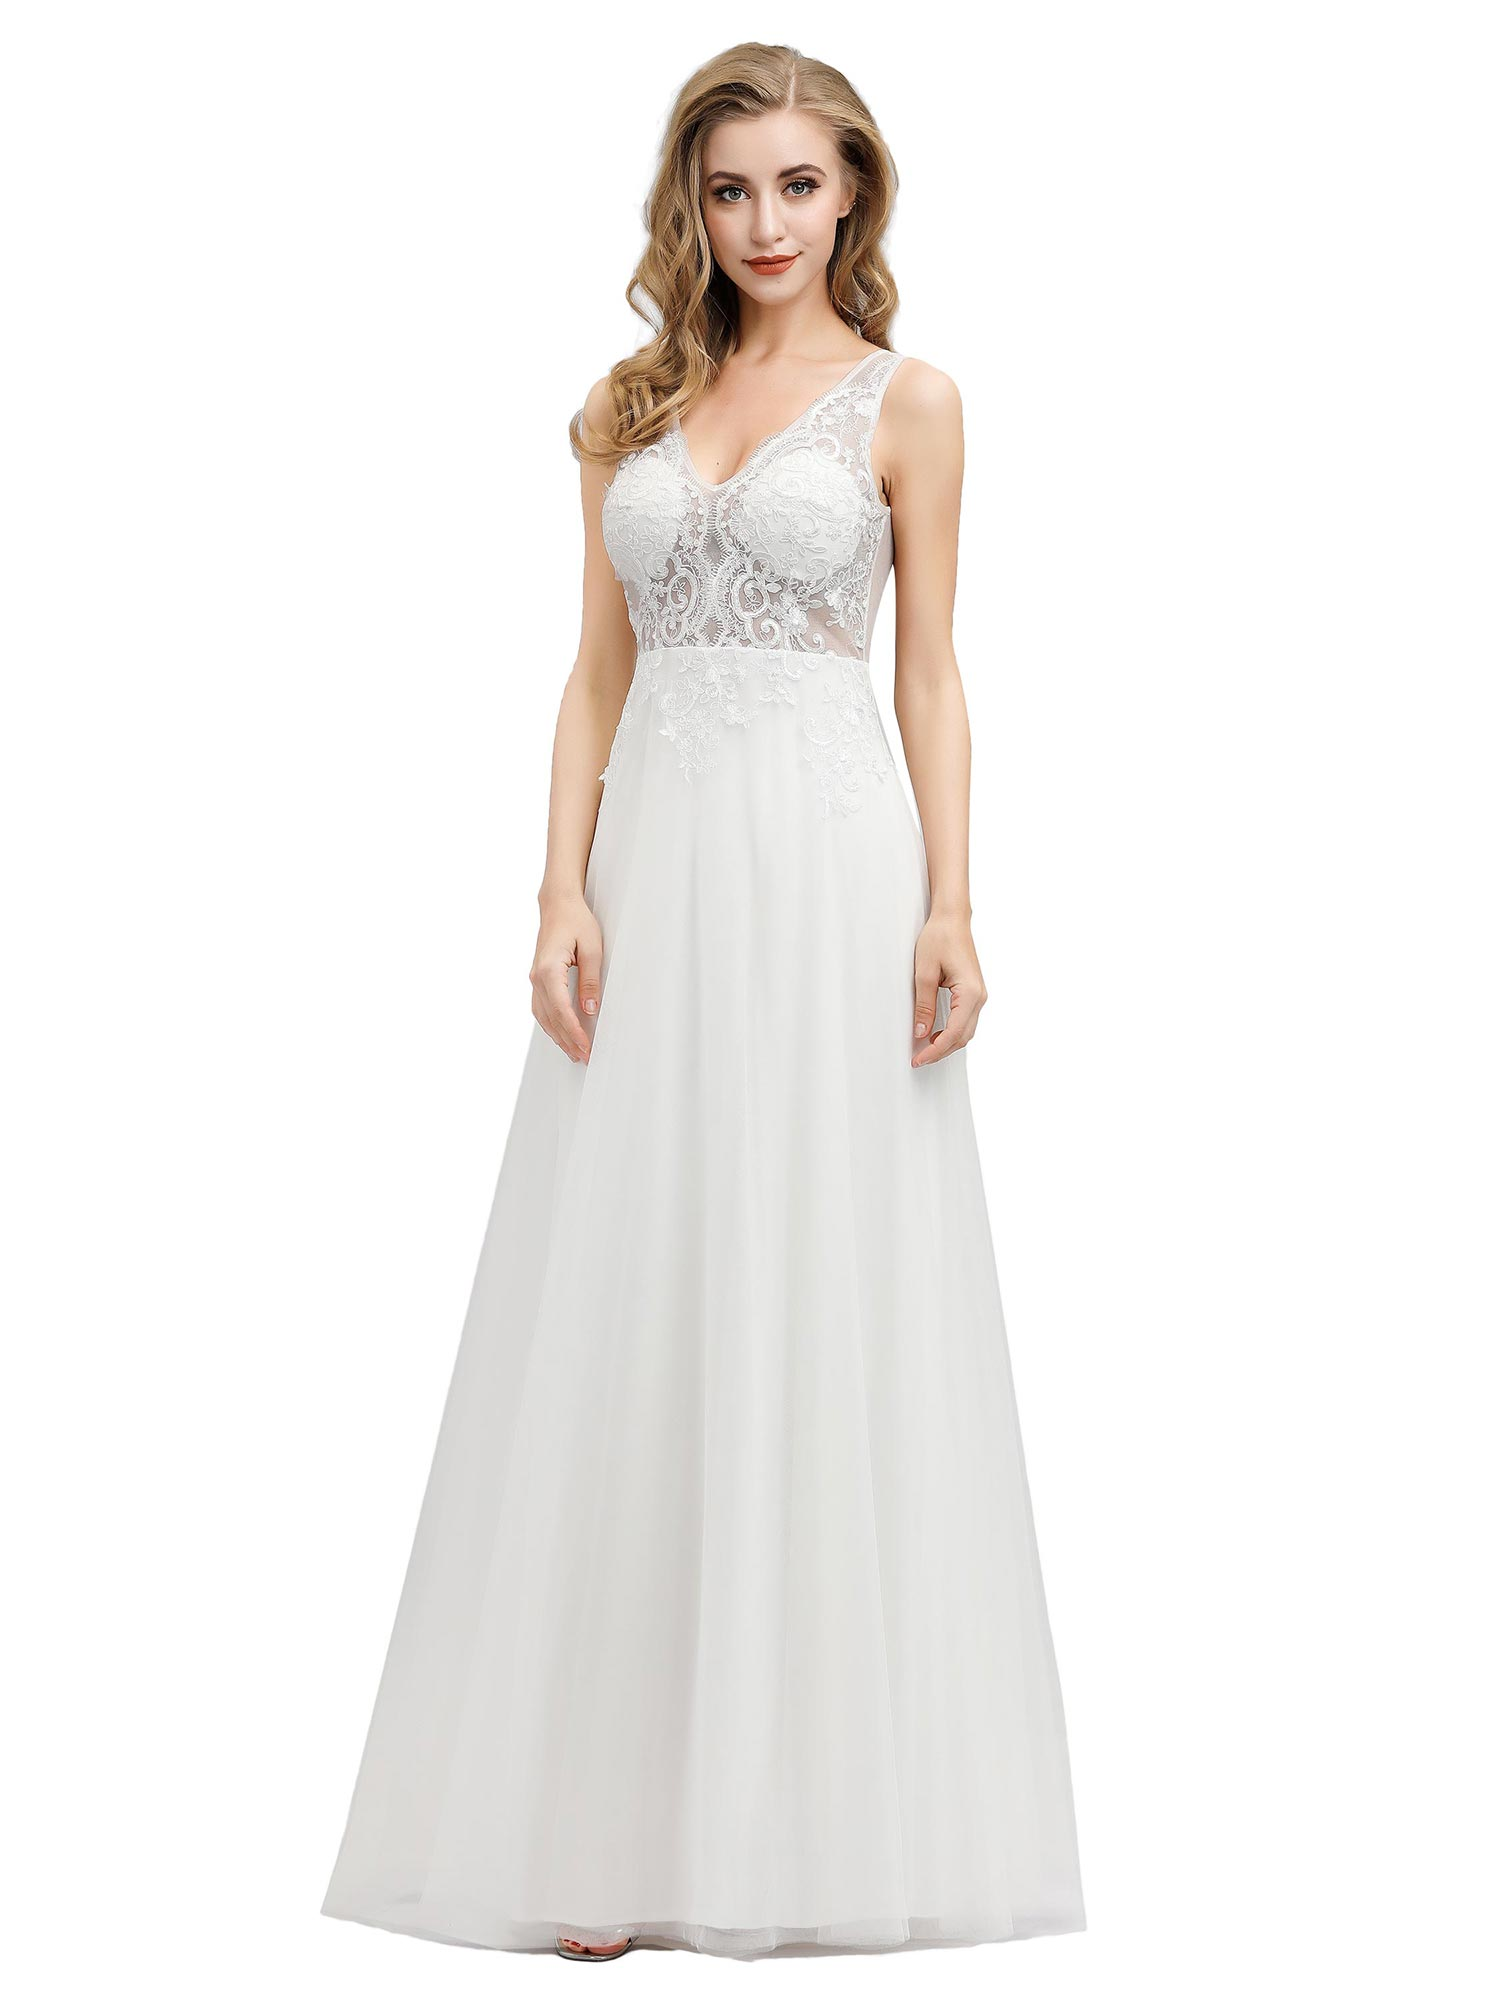 Ever-pretty-Sleeveless-Formal-Lace-Evening-Party-Dress-Cocktail-Homecoming-Prom thumbnail 4